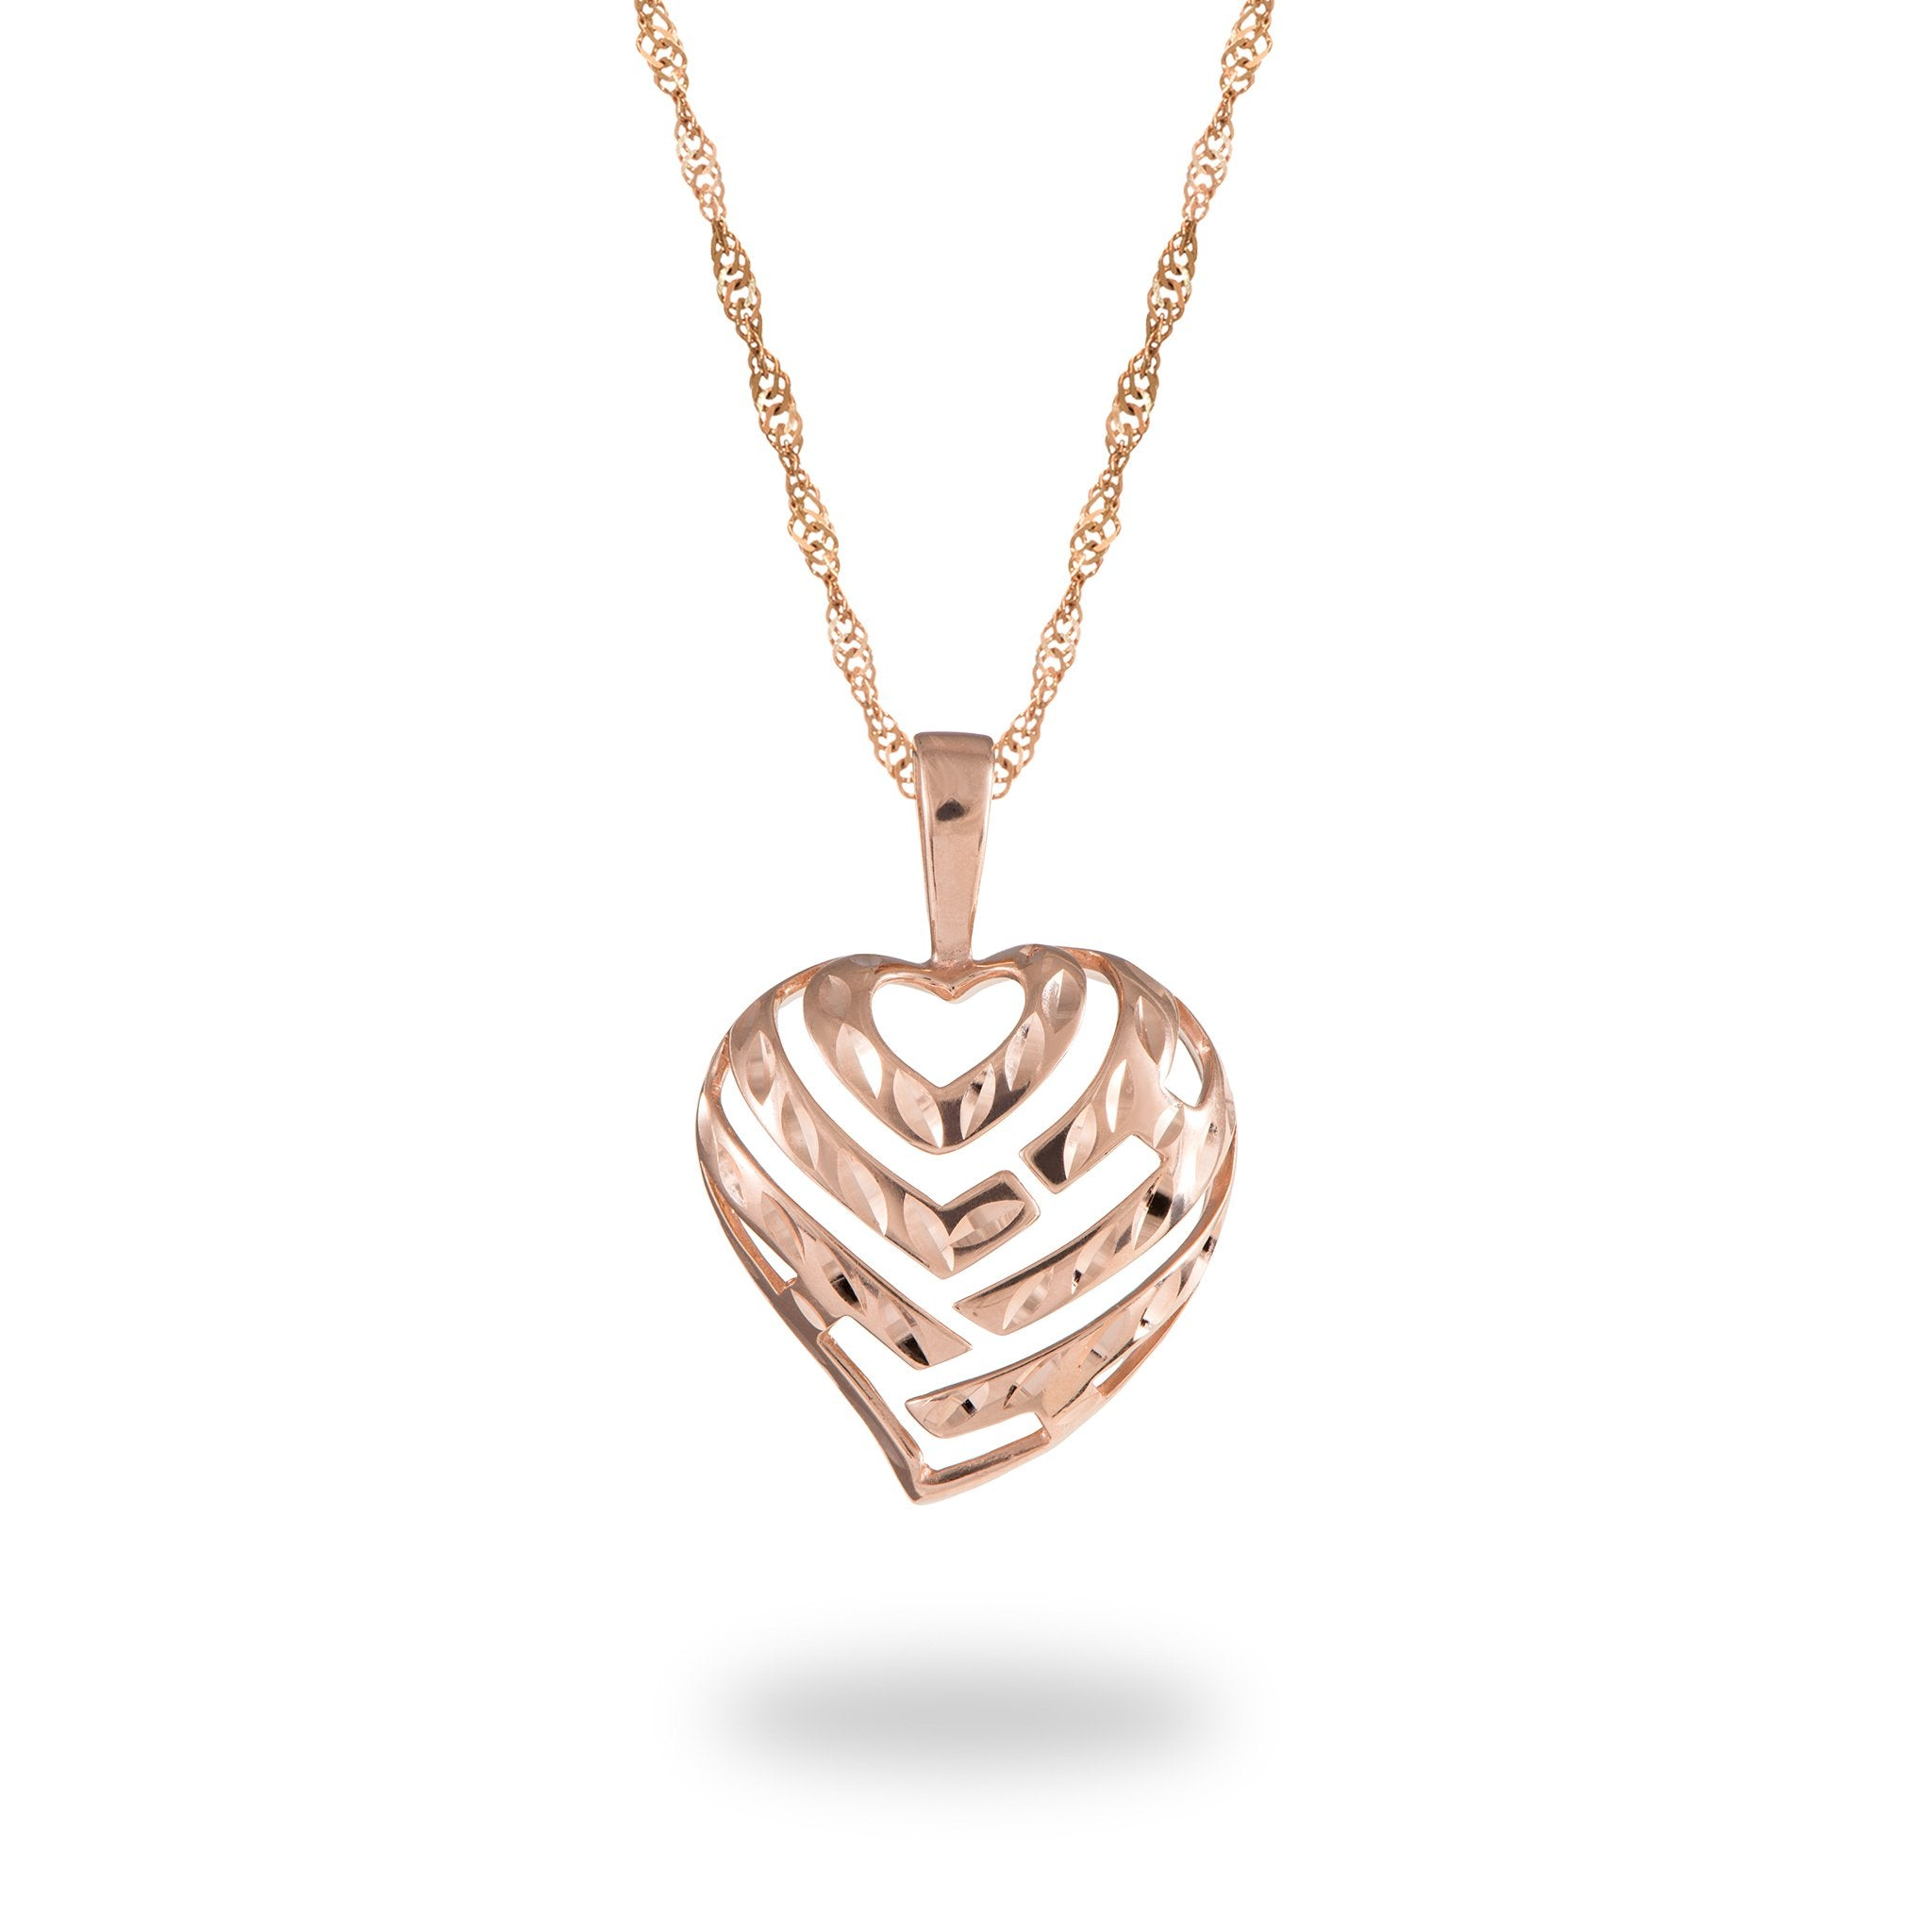 Maui divers neck chain collection aloha heart pendant and chain in 14k rose gold set mozeypictures Gallery